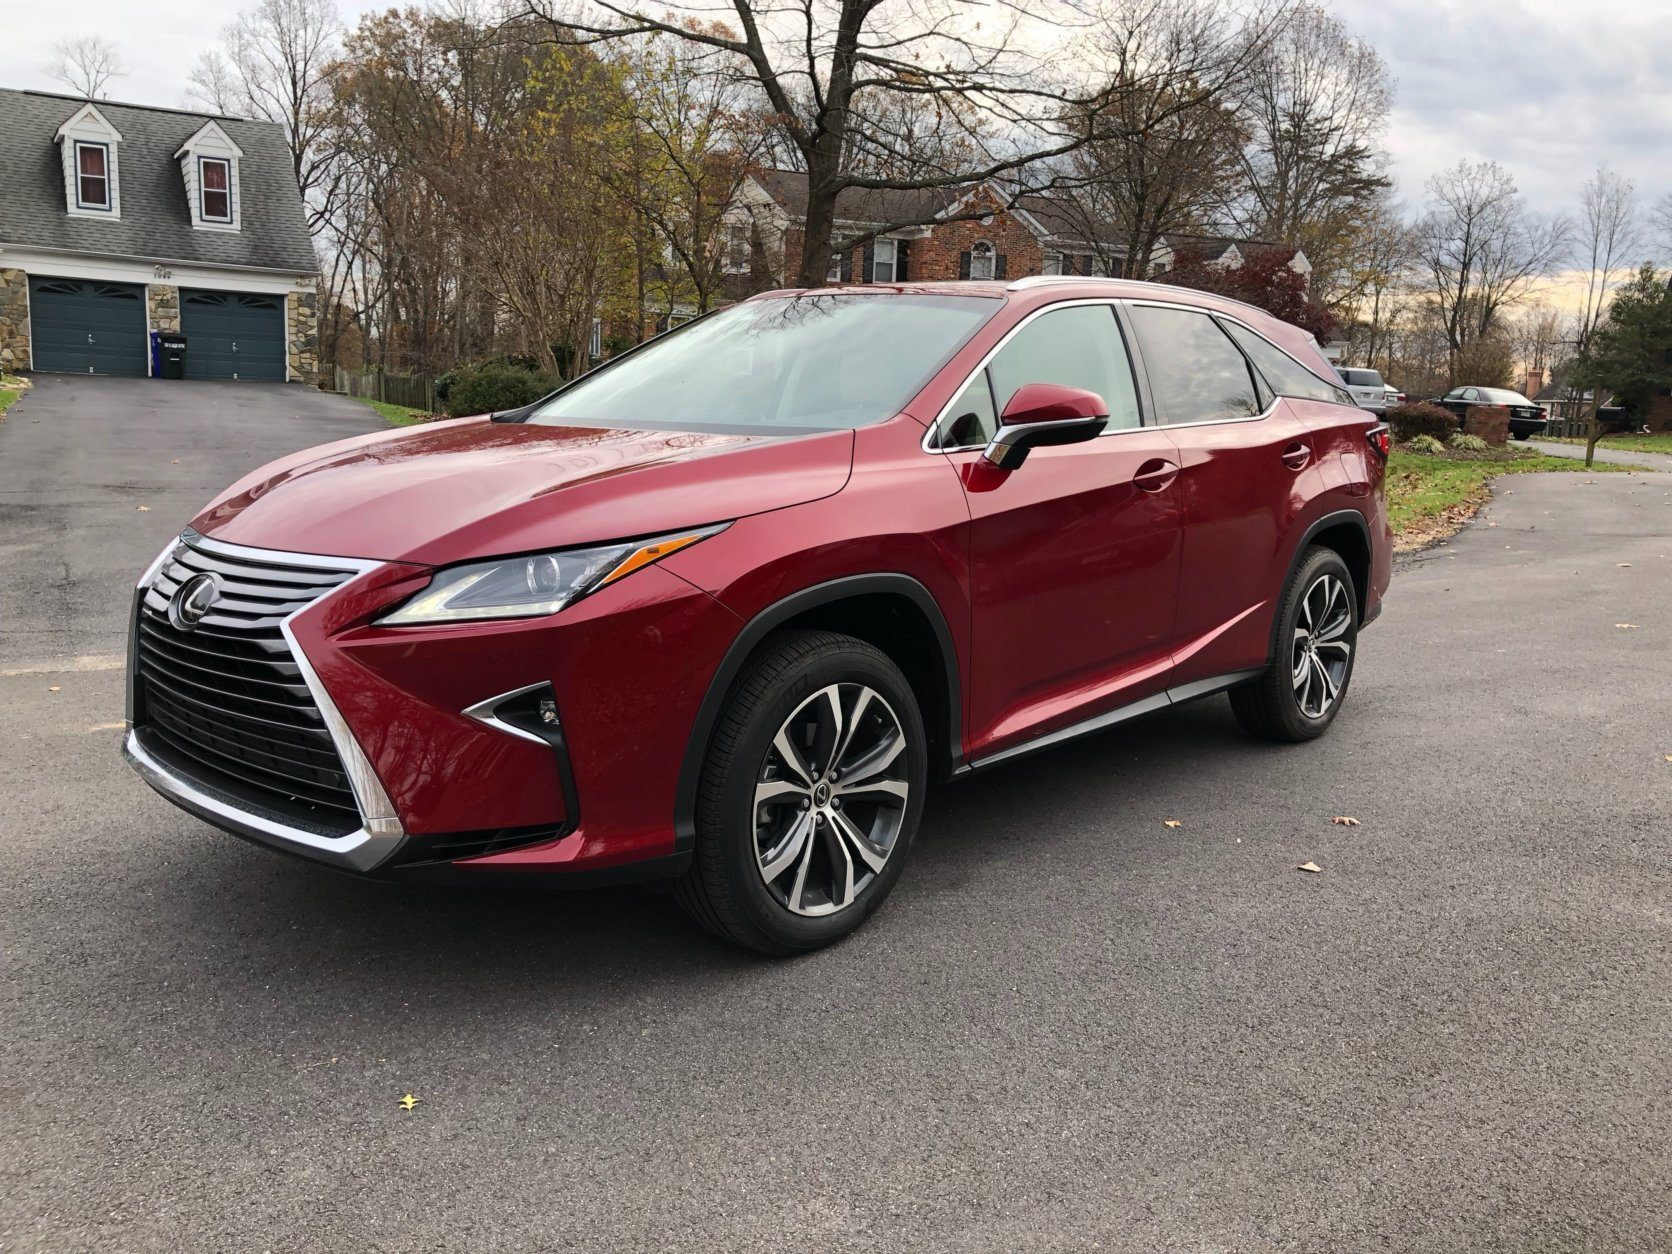 <p>The heavier RX 350L feels a little slow when five of the six seats are filled.</p> <p>Both versions of the car are easy to live with on a daily basis, and do a decent job of handling all-road surfaces. Both are confident in turns without lean.</p>